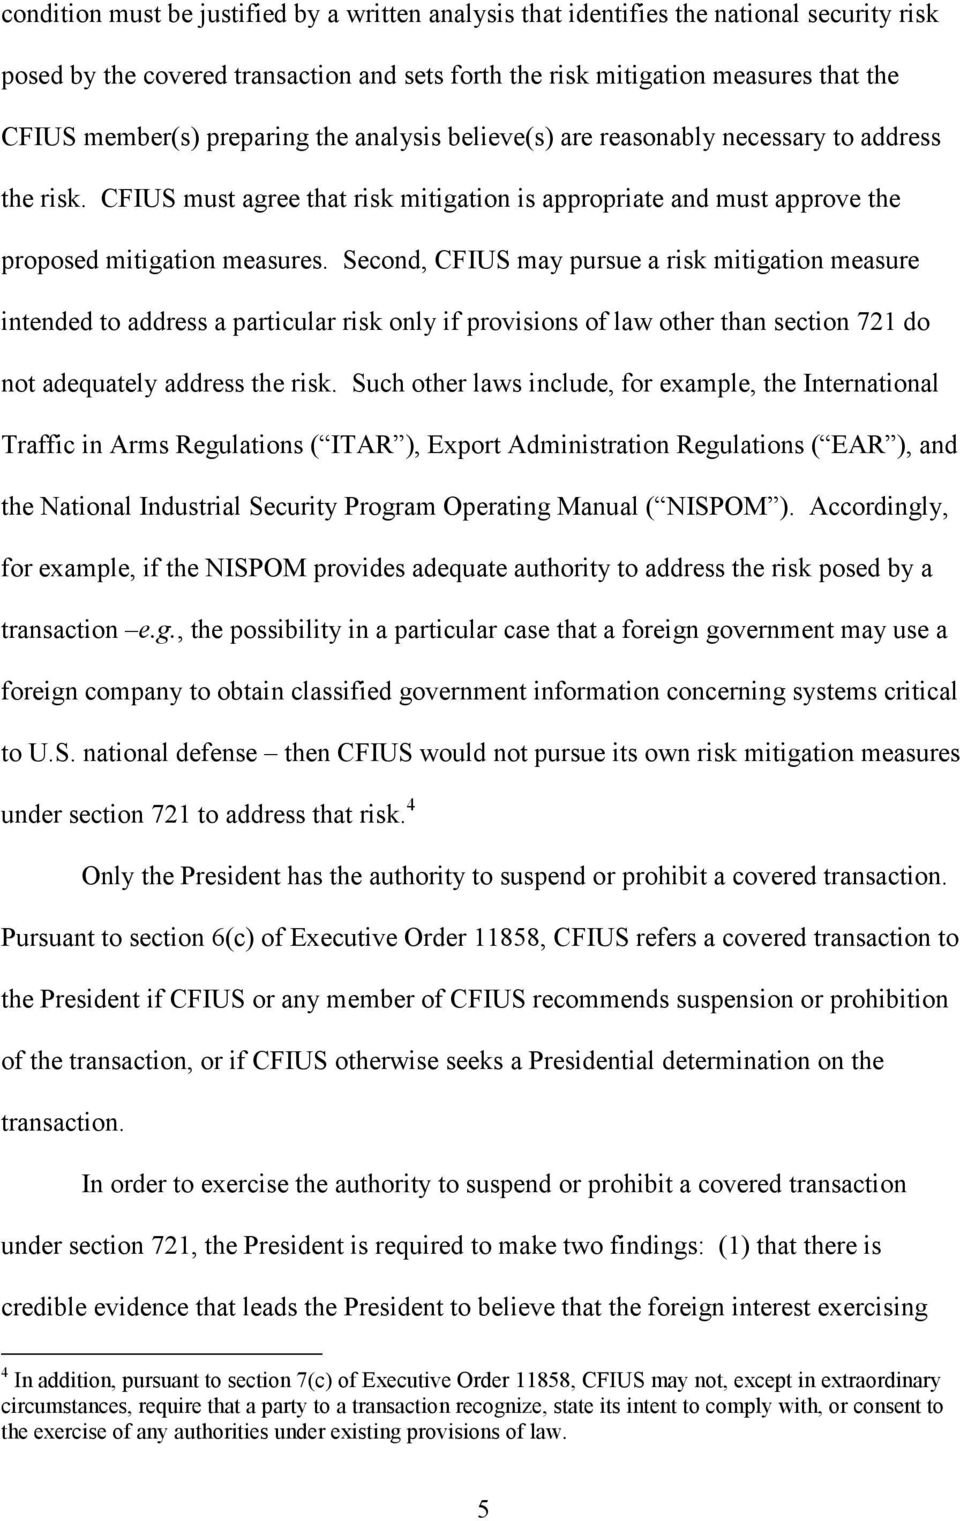 Second, CFIUS may pursue a risk mitigation measure intended to address a particular risk only if provisions of law other than section 721 do not adequately address the risk.